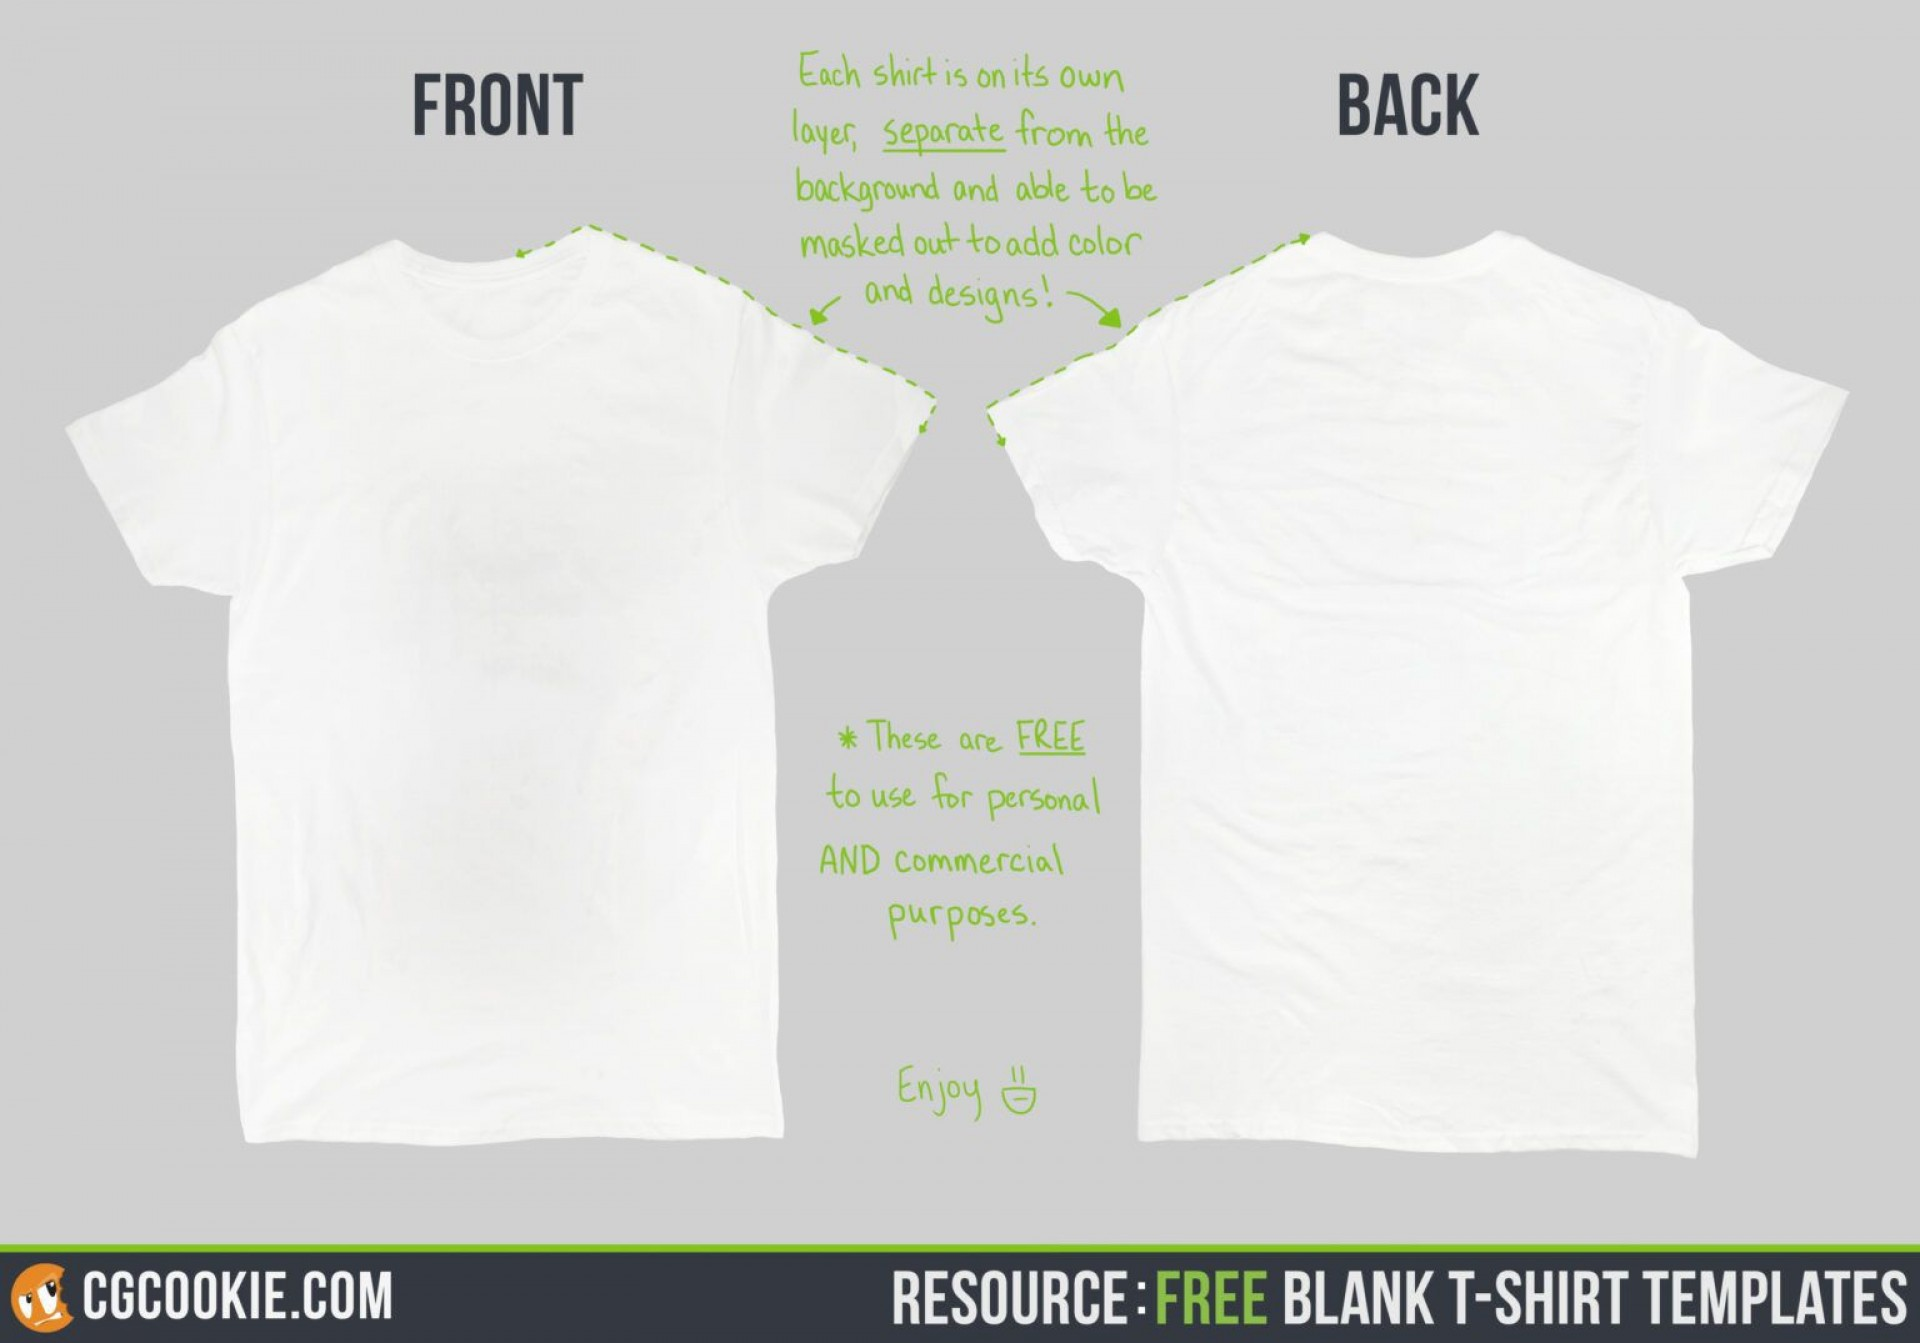 000 Outstanding T Shirt Template Free High Resolution  T-shirt Mockup Download Coreldraw Vector1920